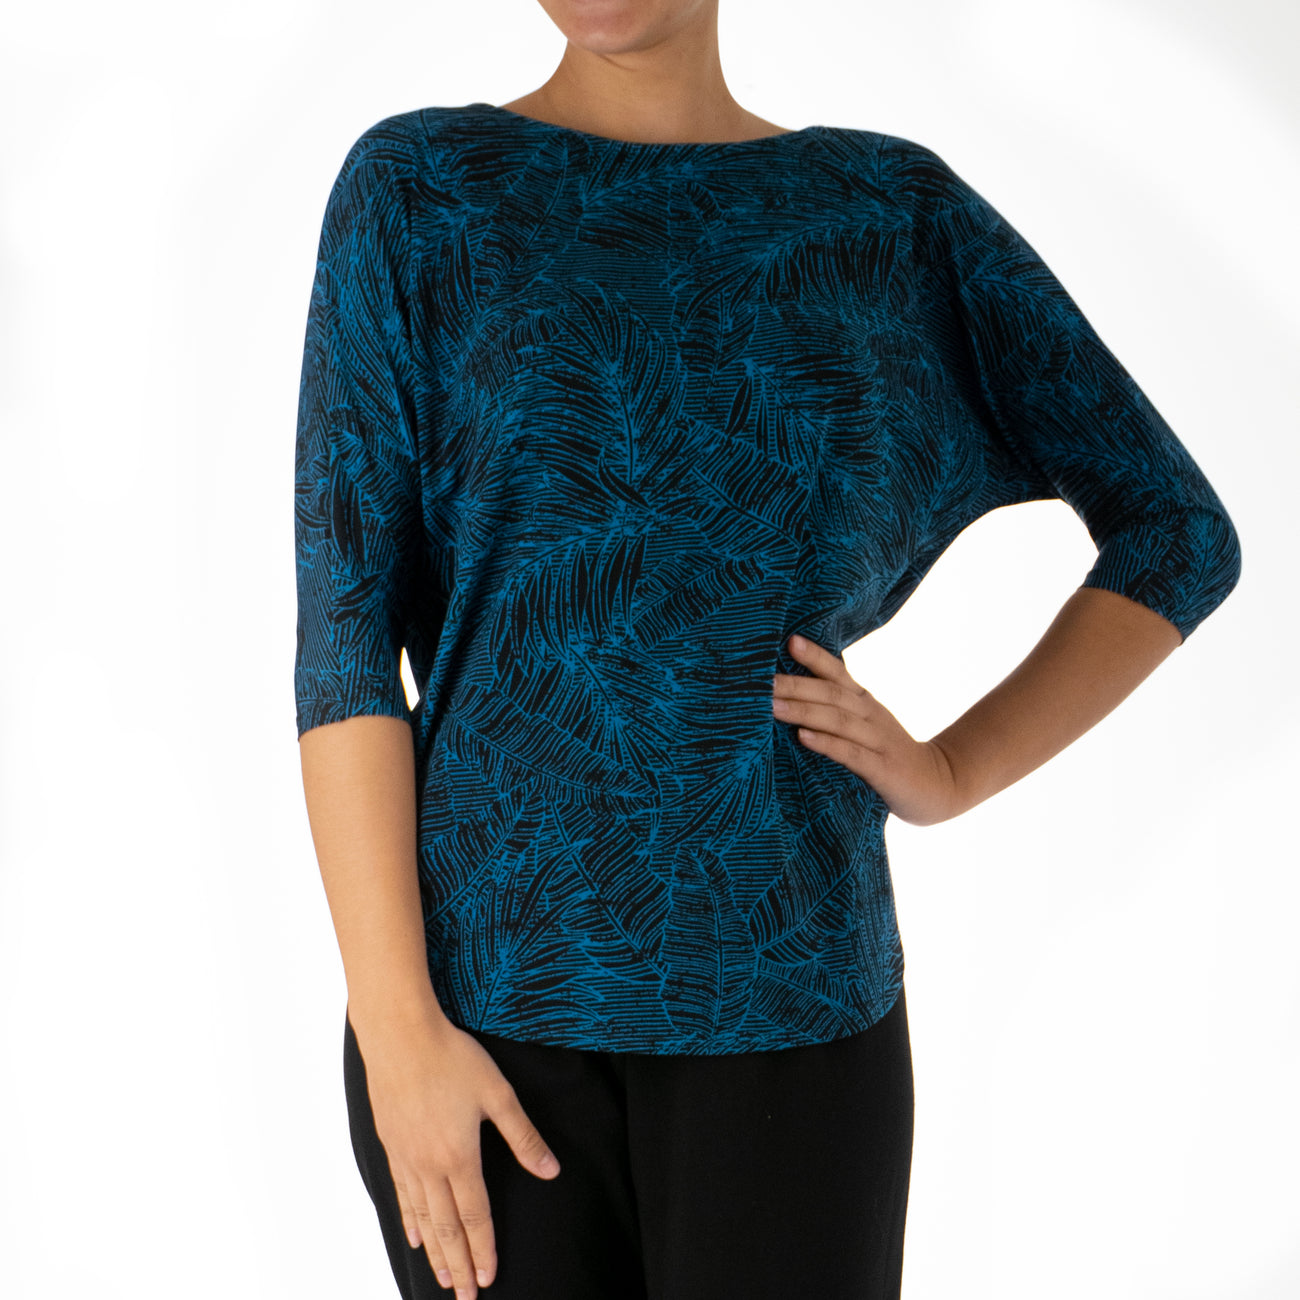 KAMA DOLMAN SLEEVE TOP